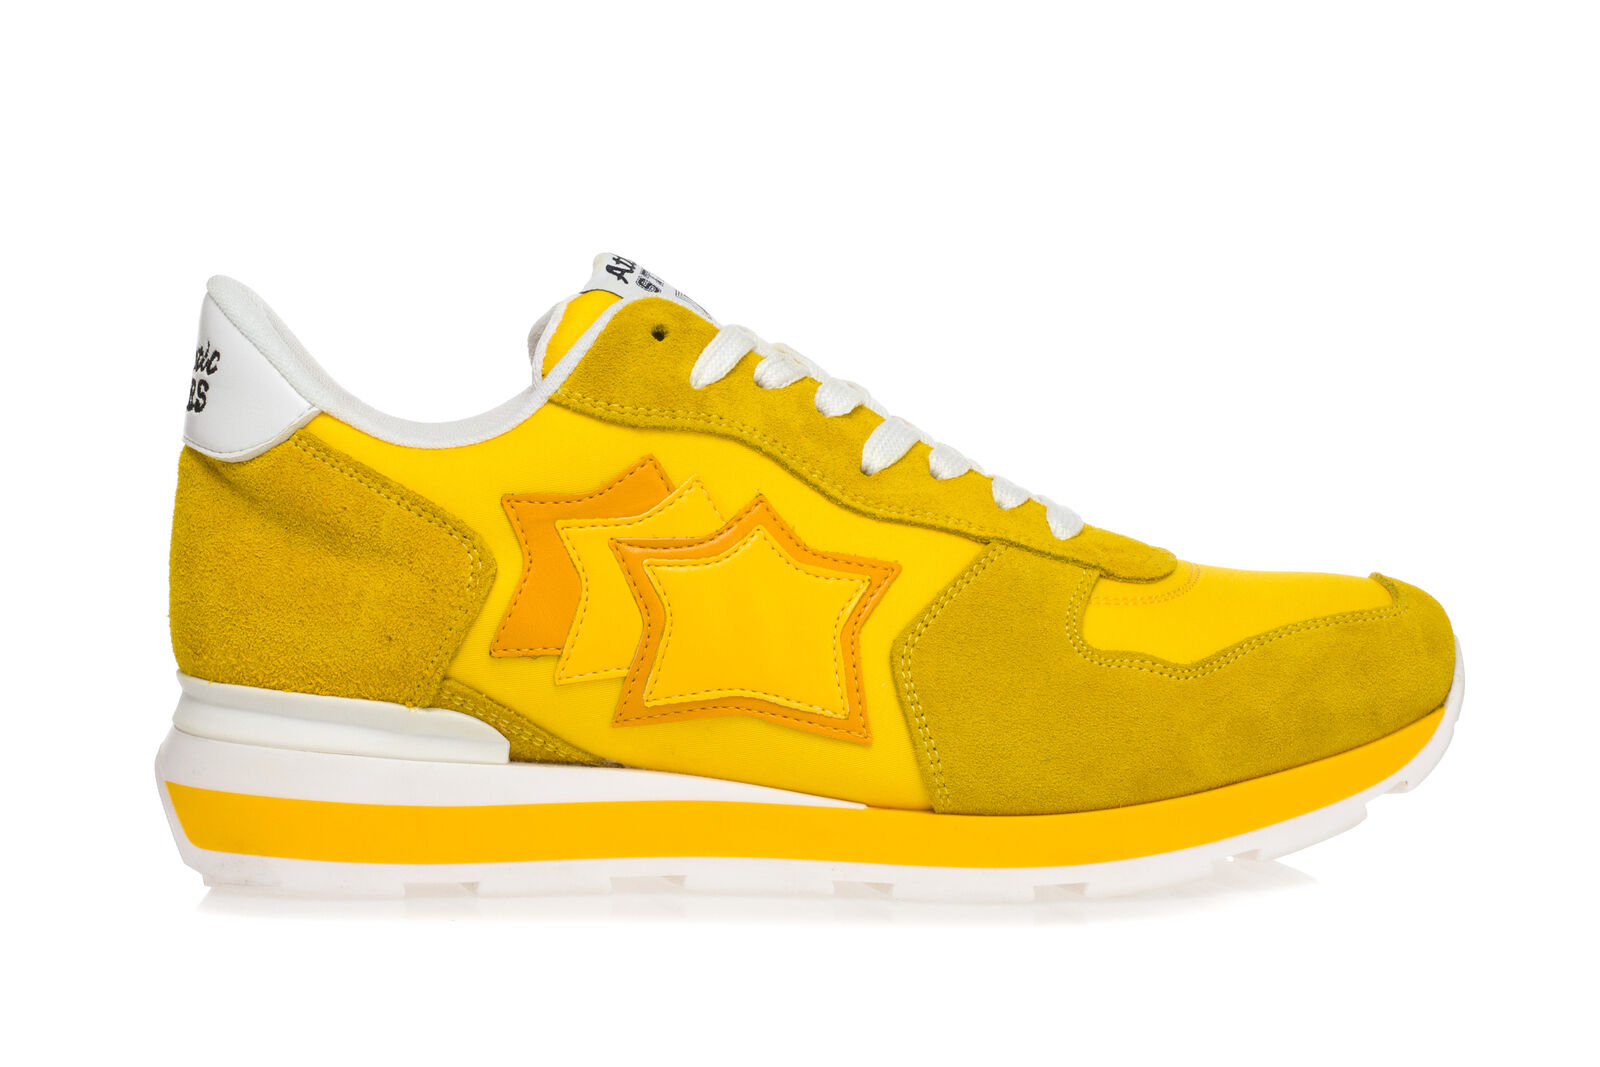 ATLANTIC STARS Mens Sneakers Shoes ANTARES Yellow Suede Leather Fabric Trainers